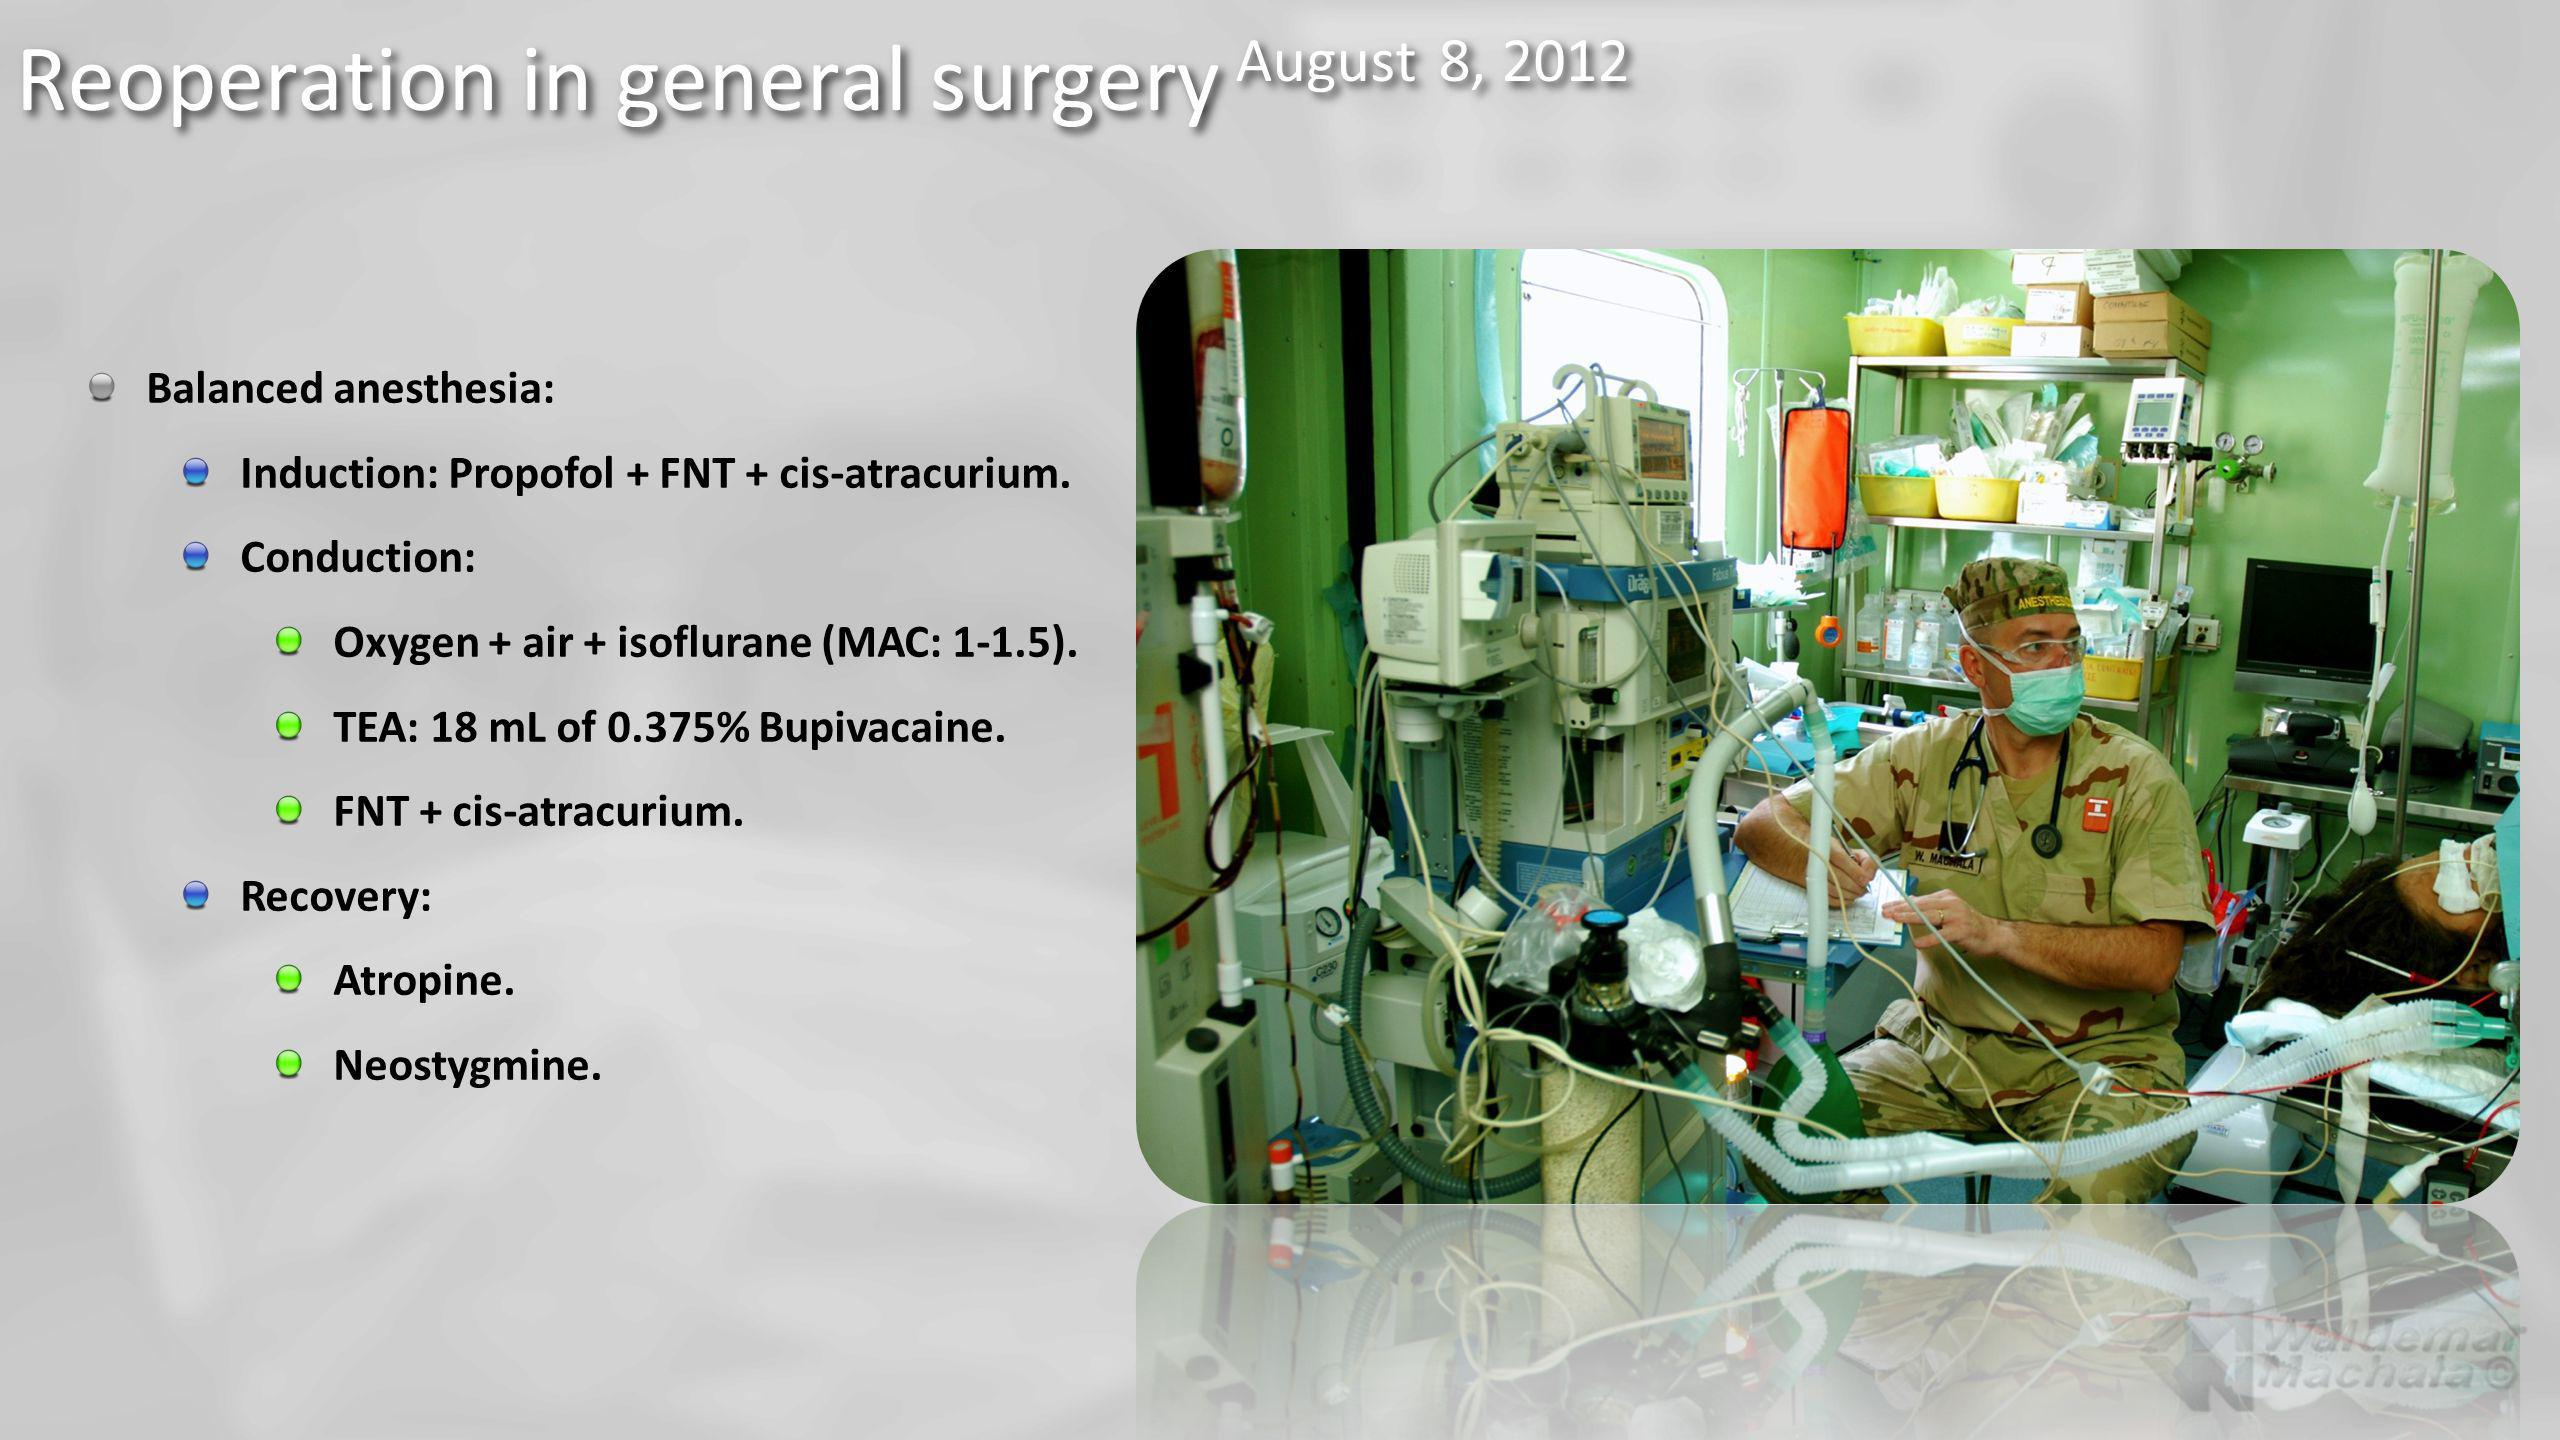 Reoperation in general surgery August 8, 2012